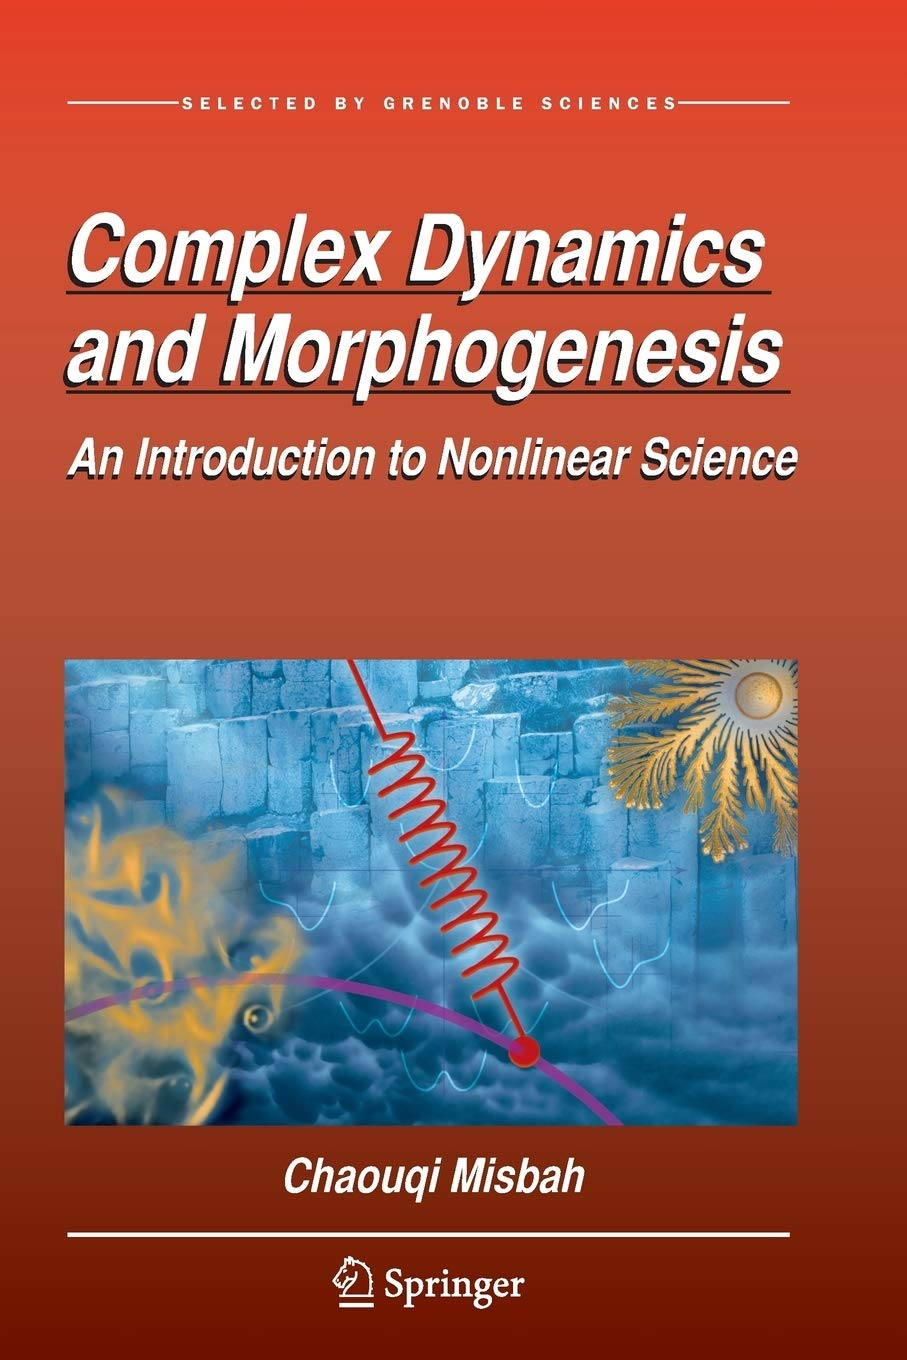 Download Complex Dynamics And Morphogenesis: An Introduction To Nonlinear Science 